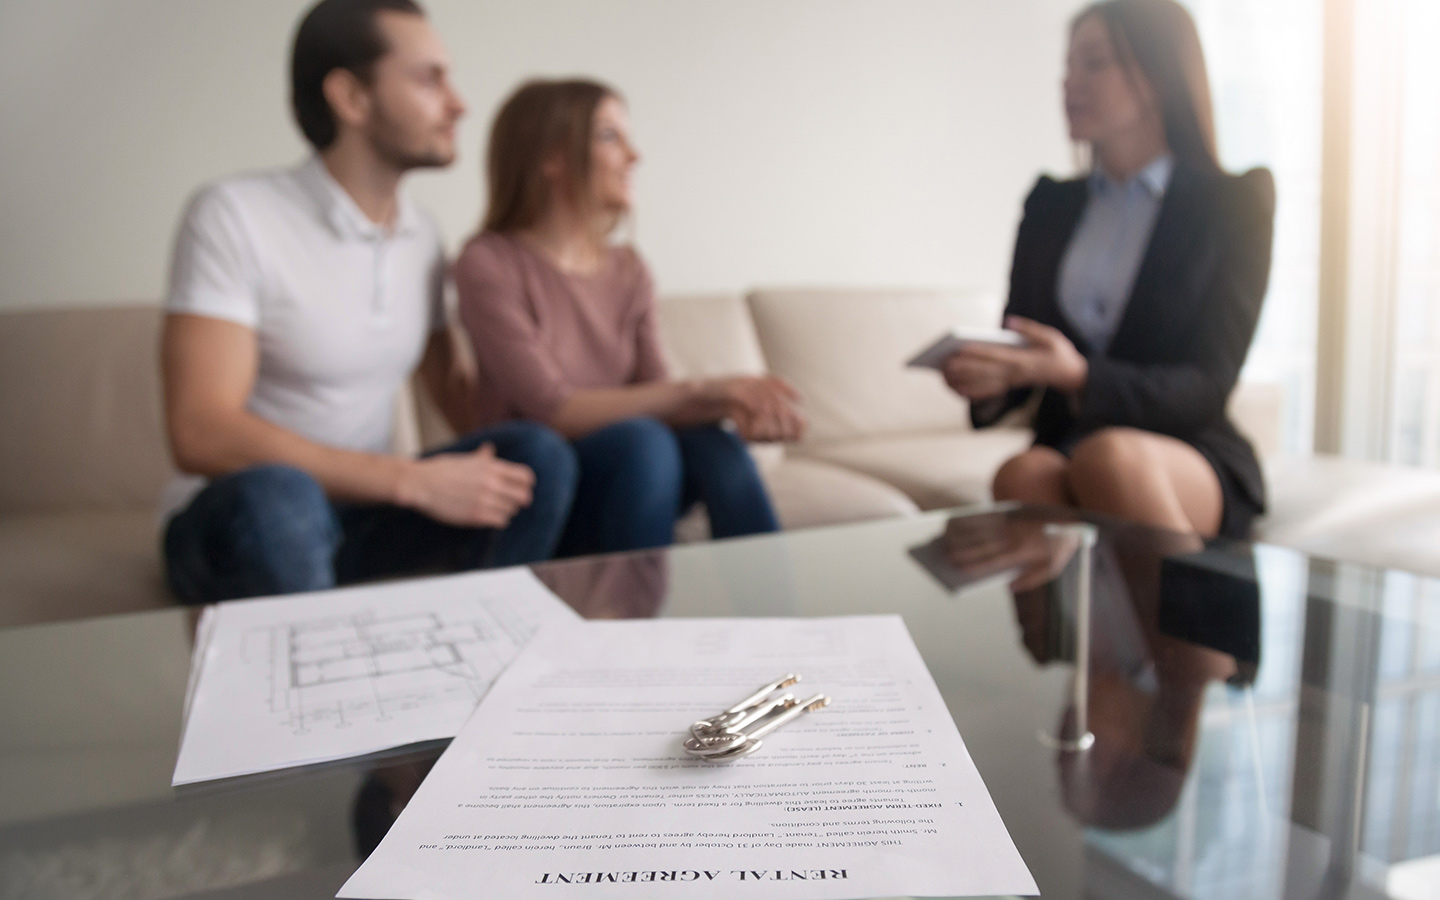 The new law aims to protect both landlords and tenants